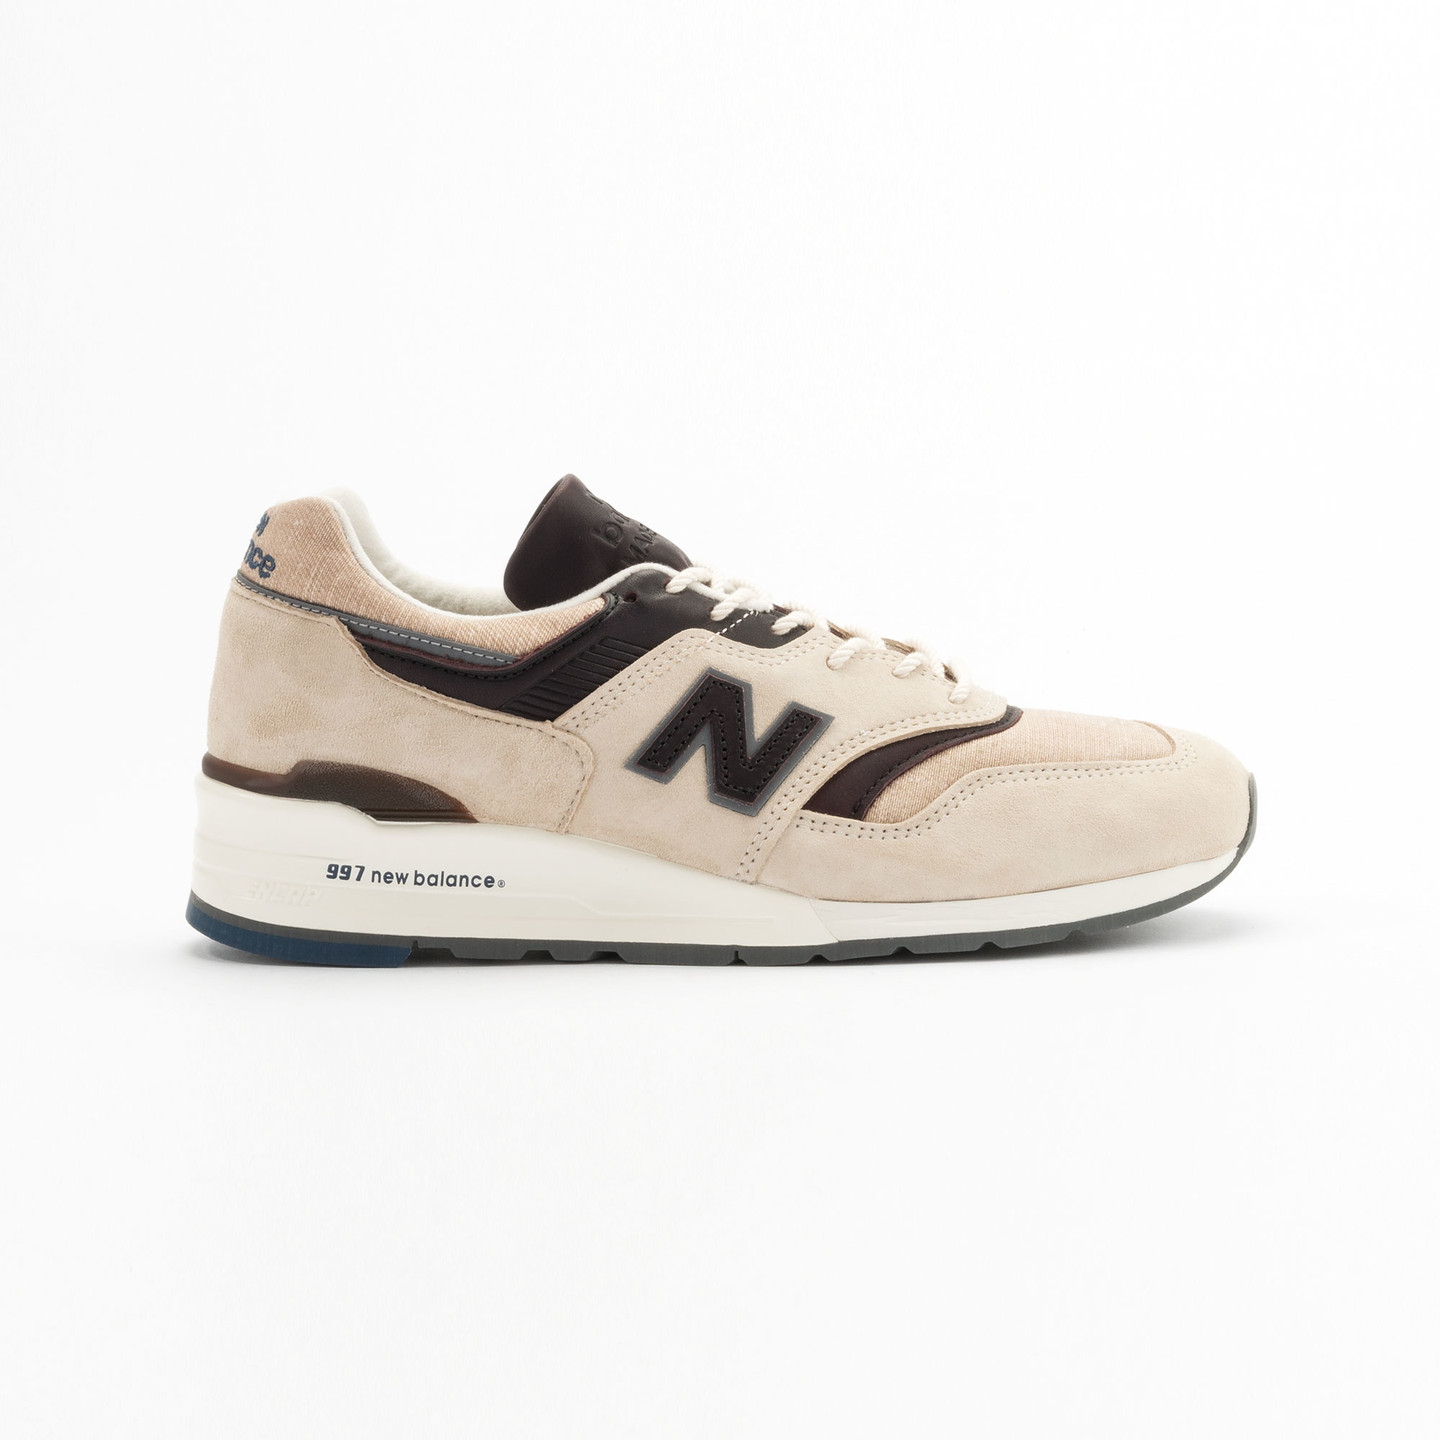 New Balance M997 DSAI - Made in USA Sand / Antique Brown M997DSAI-42.5